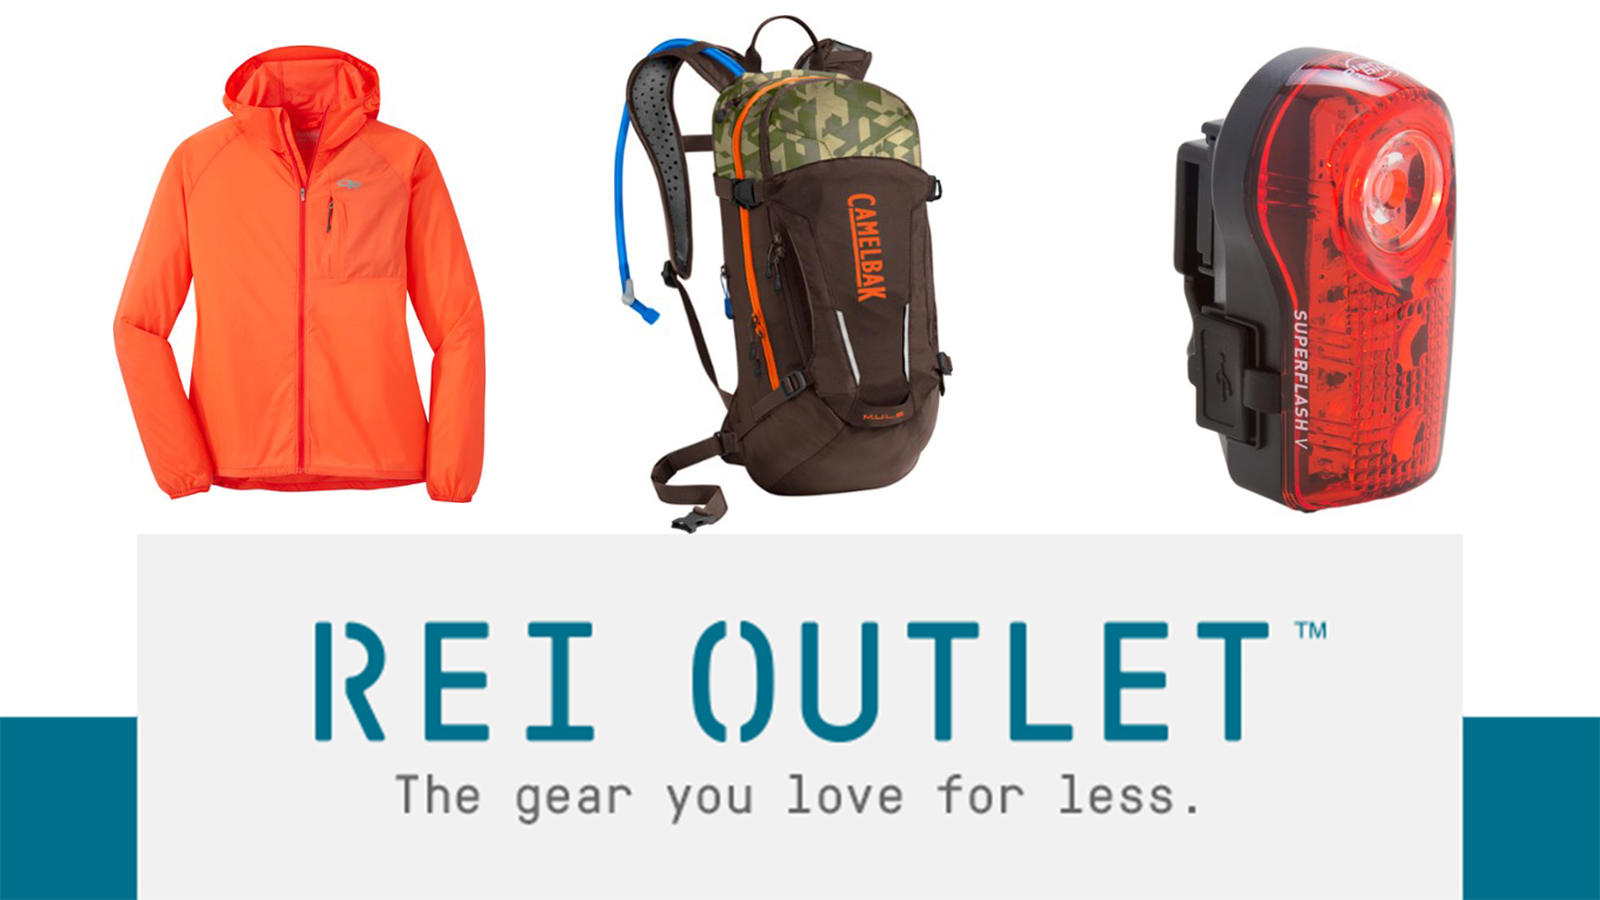 You'll find something for all of your outdoor pursuits at the REI Outlet Sale.